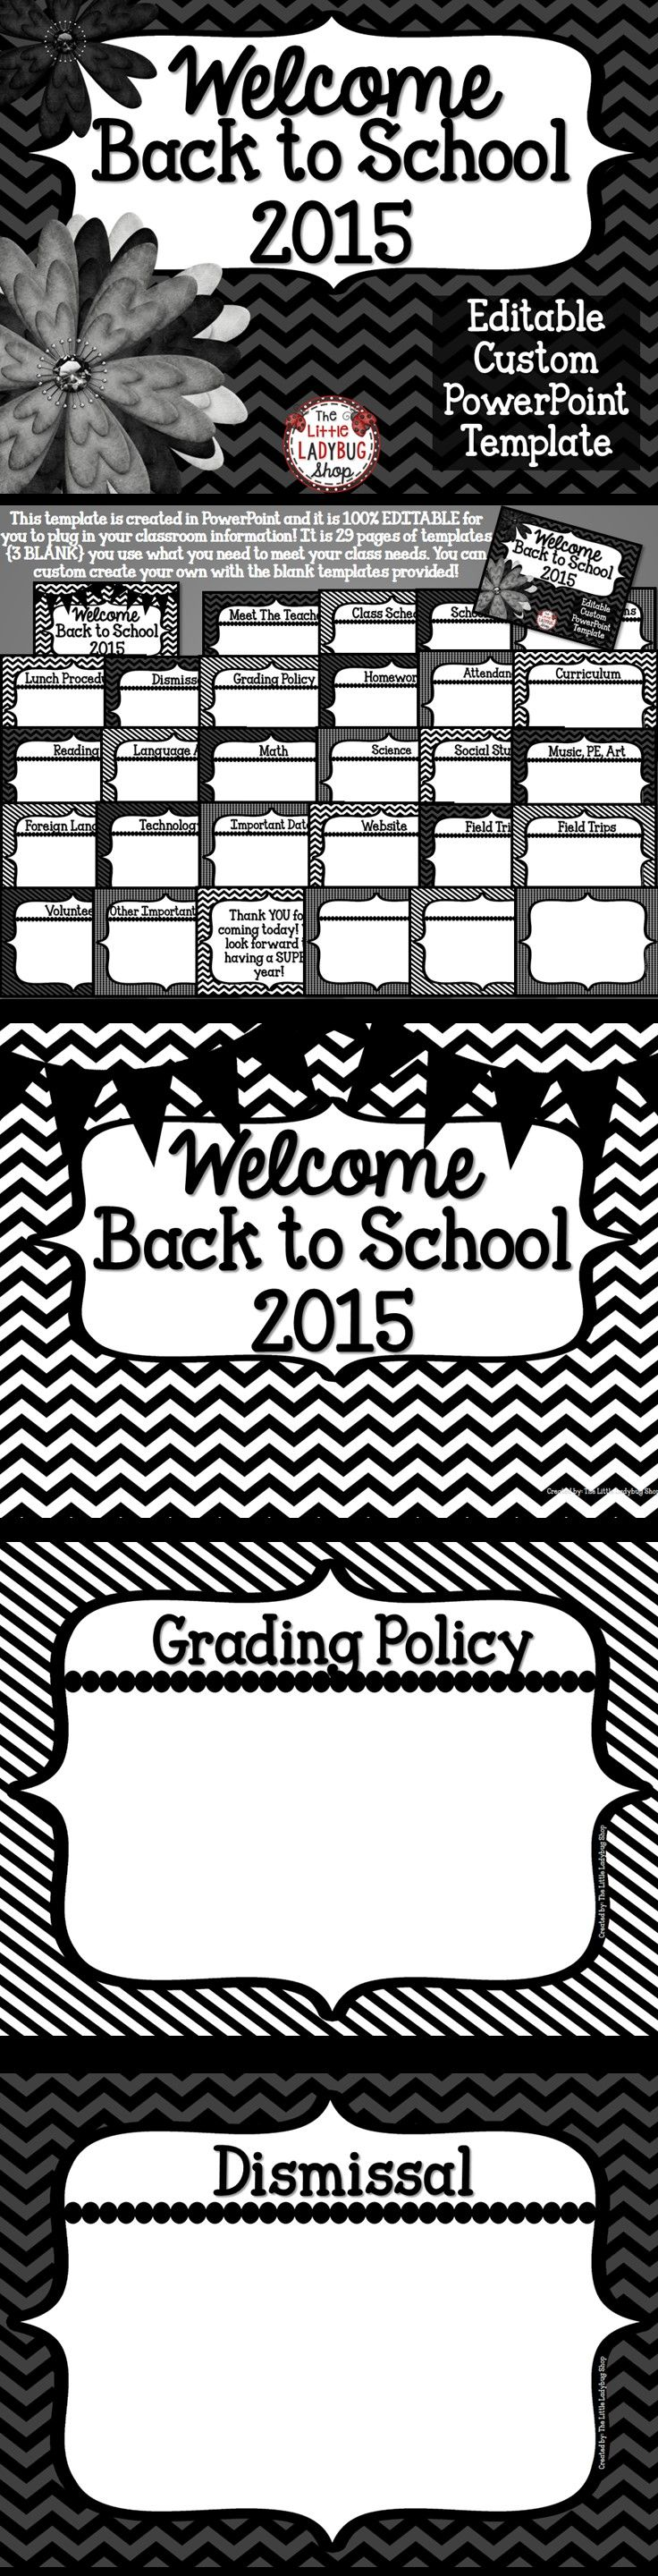 Back to school powerpoint for open house and meet the teacher back to school powerpoint for open house and meet the teacher template toneelgroepblik Images